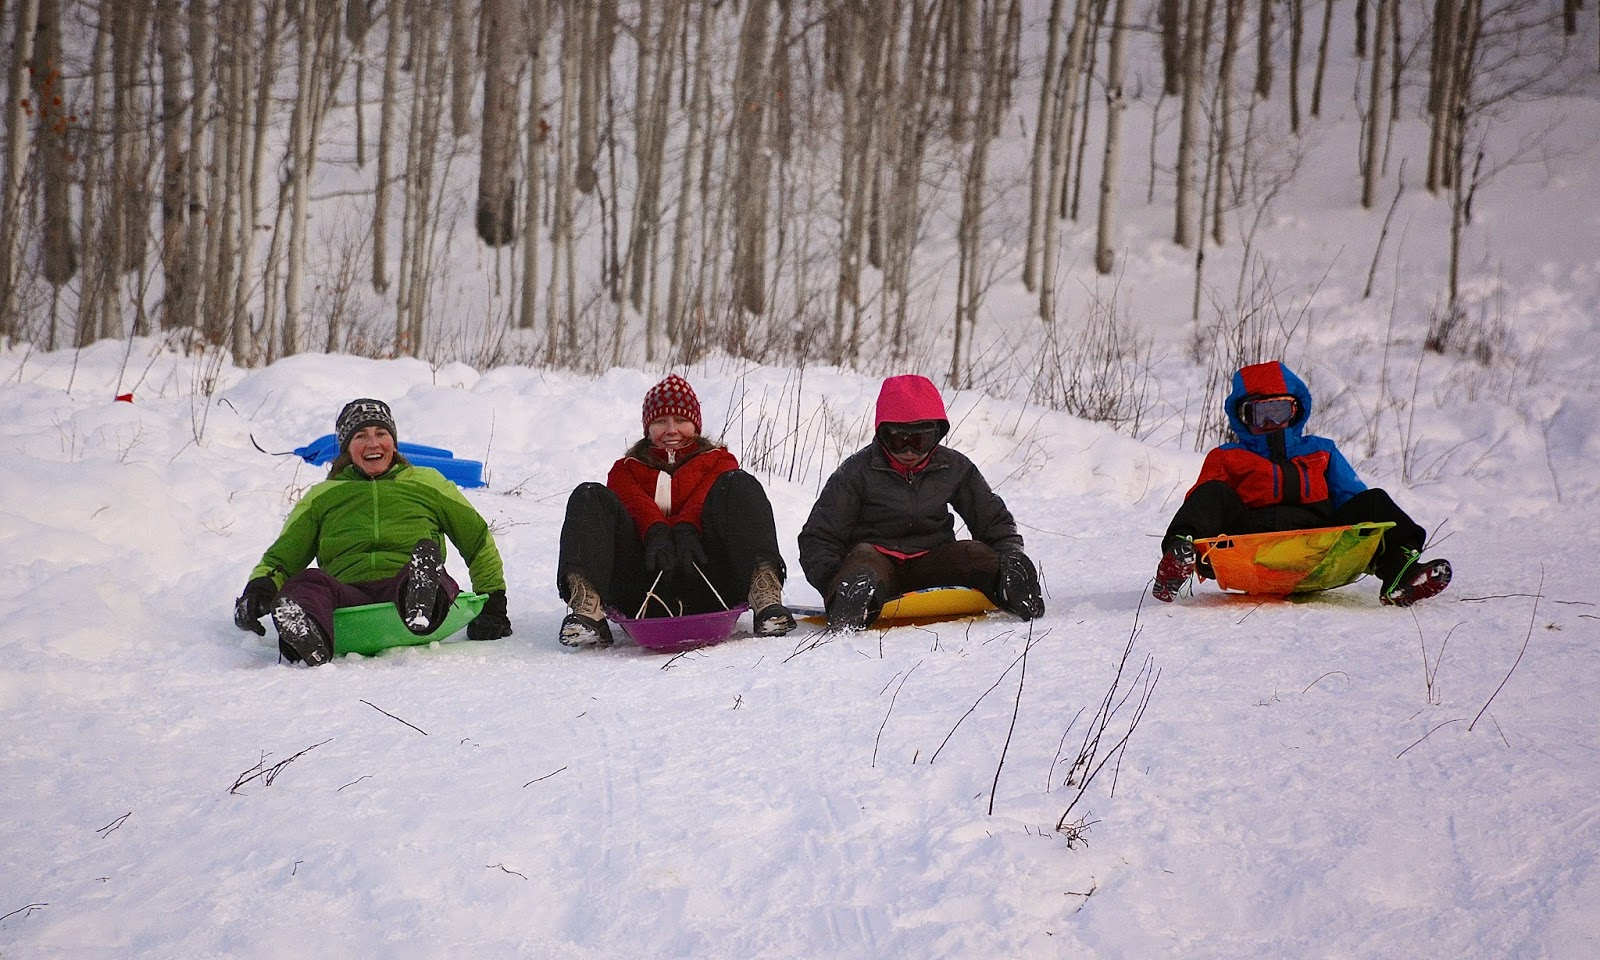 Sledding Colorado